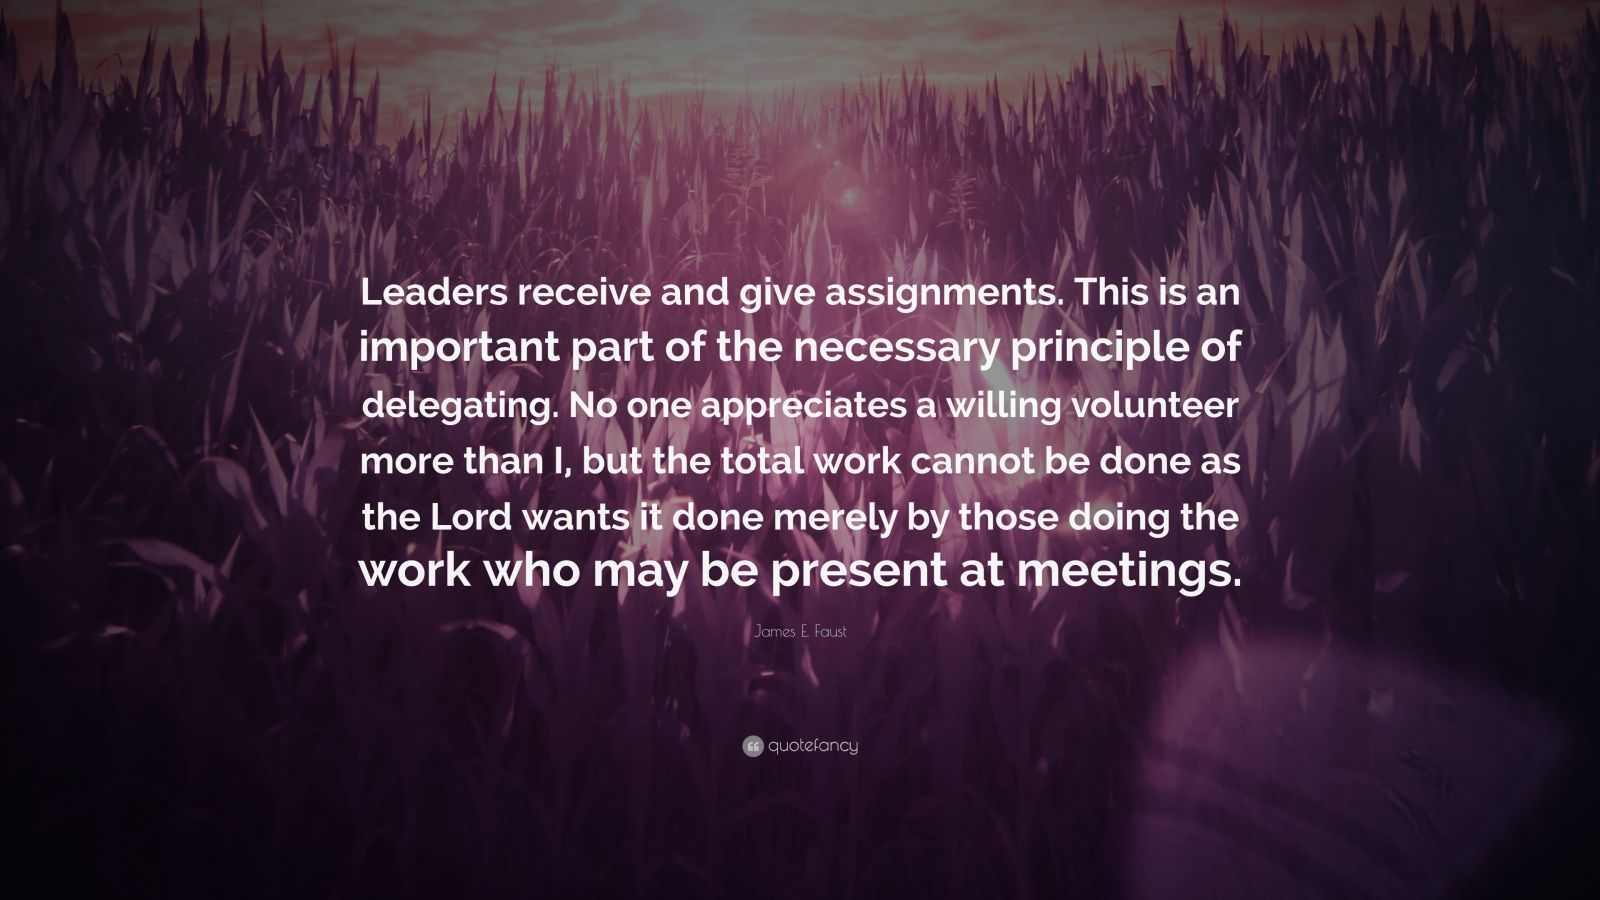 """James E. Faust Quote: """"Leaders receive and give assignments. This is an important part of the necessary principle of delegating. No one appreciates a willing volunteer more than I, but the total work cannot be done as the Lord wants it done merely by those doing the work who may be present at meetings."""""""